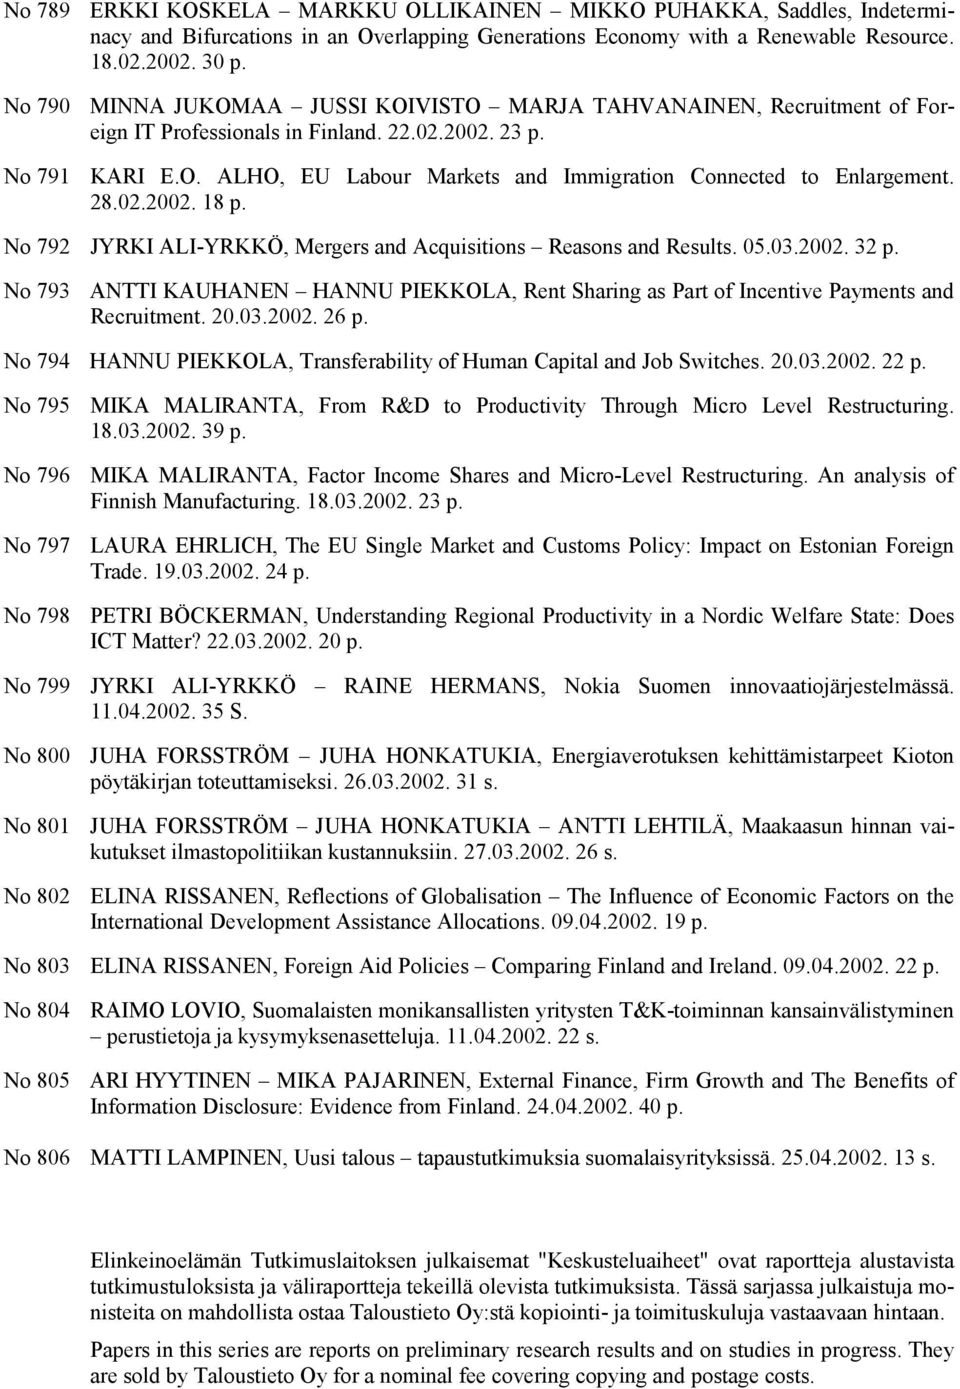 No 792 JYRKI ALI-YRKKÖ, Mergers and Acquisitions Reasons and Results. 05.03.2002. 32 p. No 793 ANTTI KAUHANEN HANNU PIEKKOLA, Rent Sharing as Part of Incentive Payments and Recruitment. 20.03.2002. 26 p.